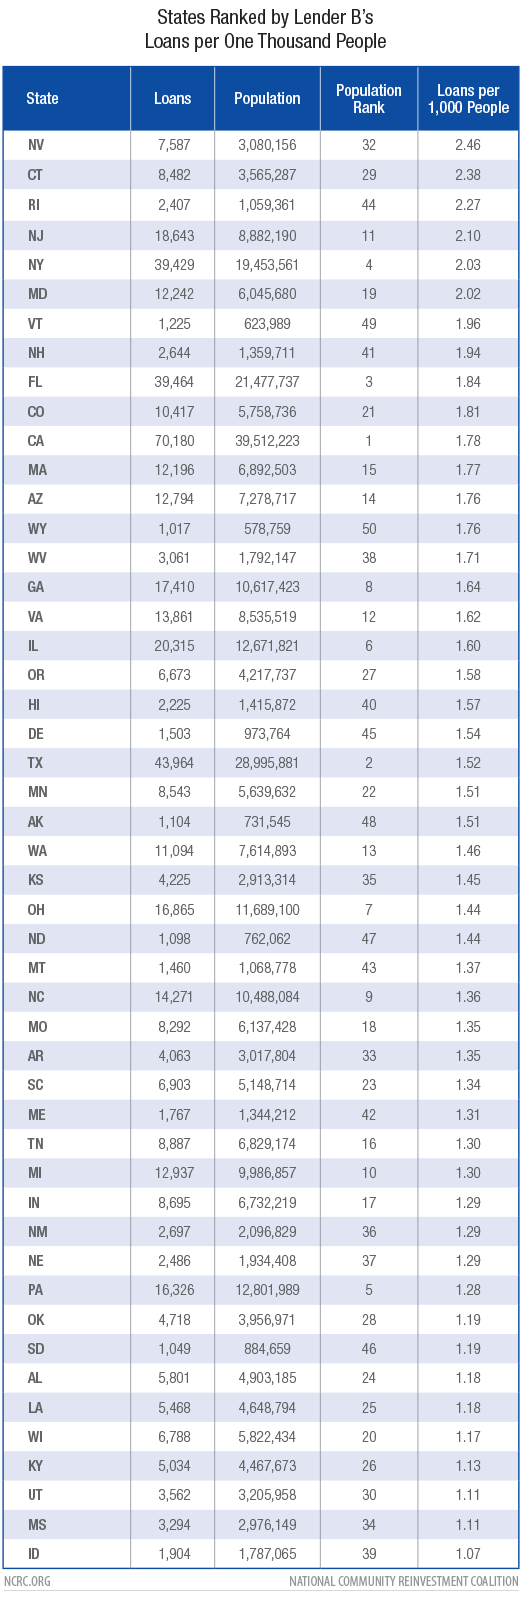 States Ranked by Lender B Loans per One Thousand People